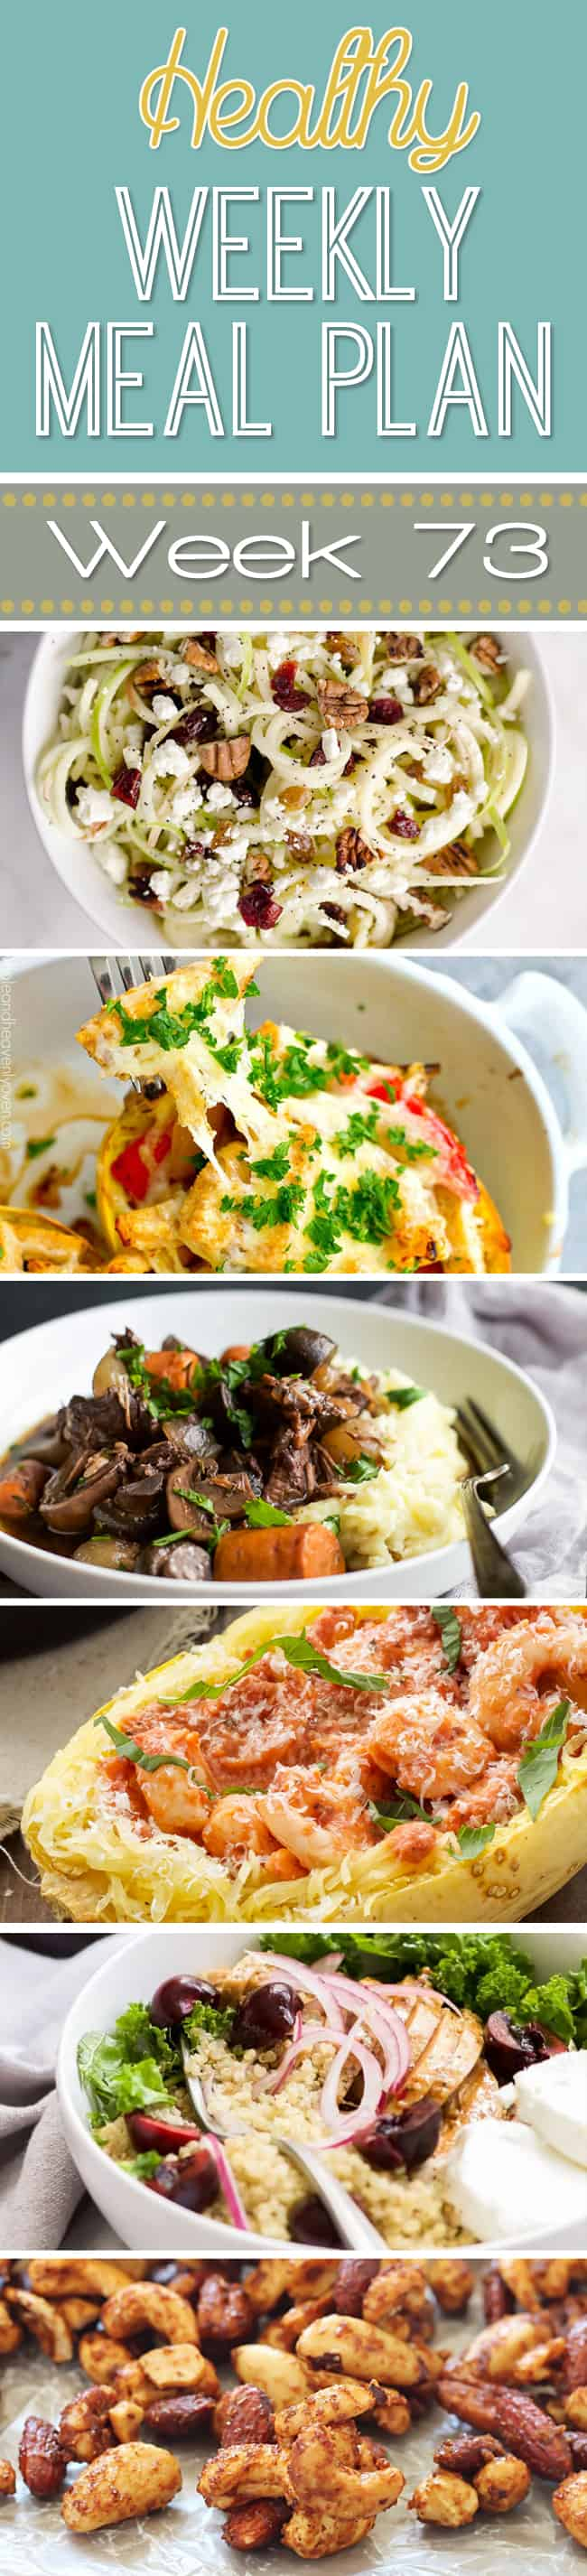 Make your life easier AND healthier! This healthy meal plan has a weeks worth of healthy recipes you can make for your family for breakfast, lunch, and dinner with a few snacks and desserts snuck in!   joyfulhealthyeats.com #family #dinnerideas #kidfriendly